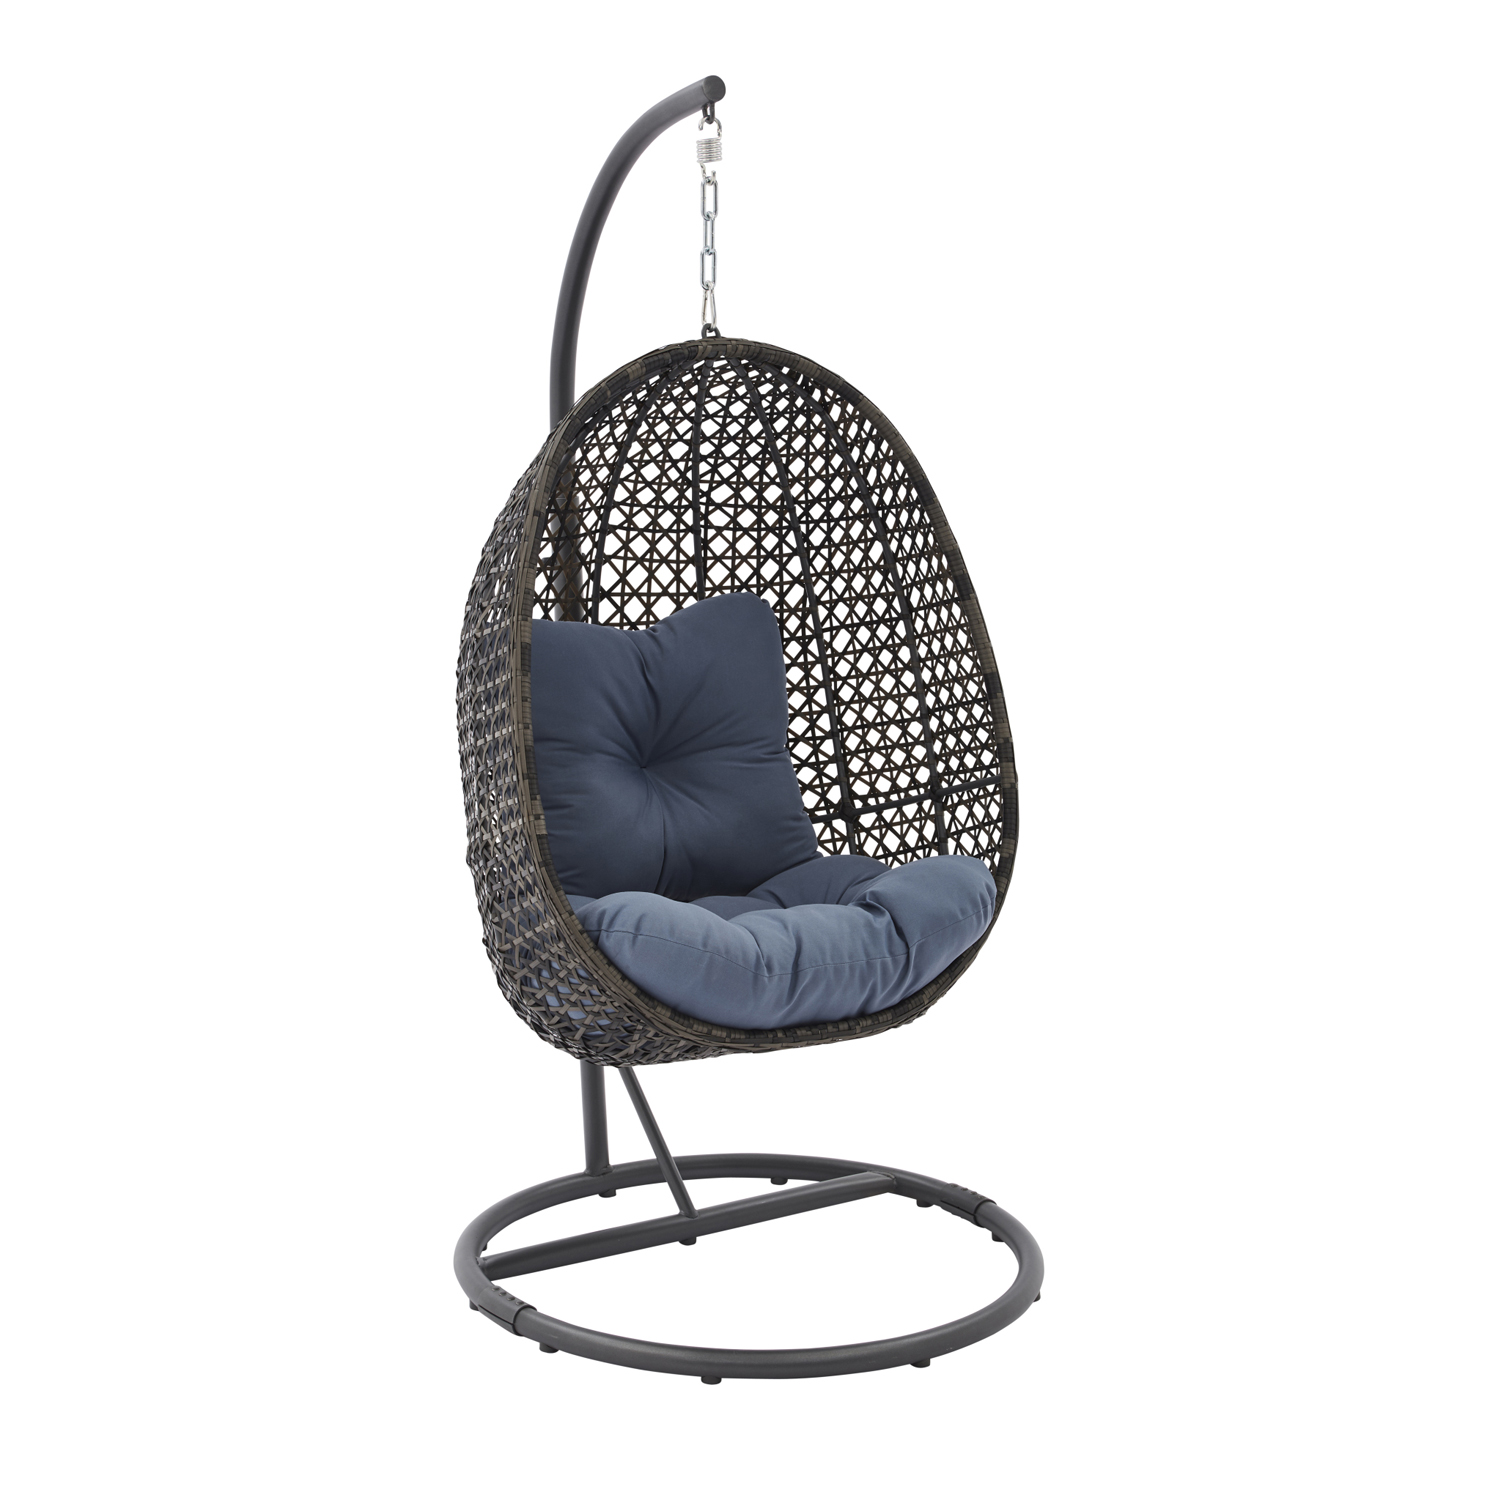 Hanging Egg Chair Outdoor Details About Patio Furniture Cushions Porch Swing Outdoor Wicker Hanging Chair With Stand